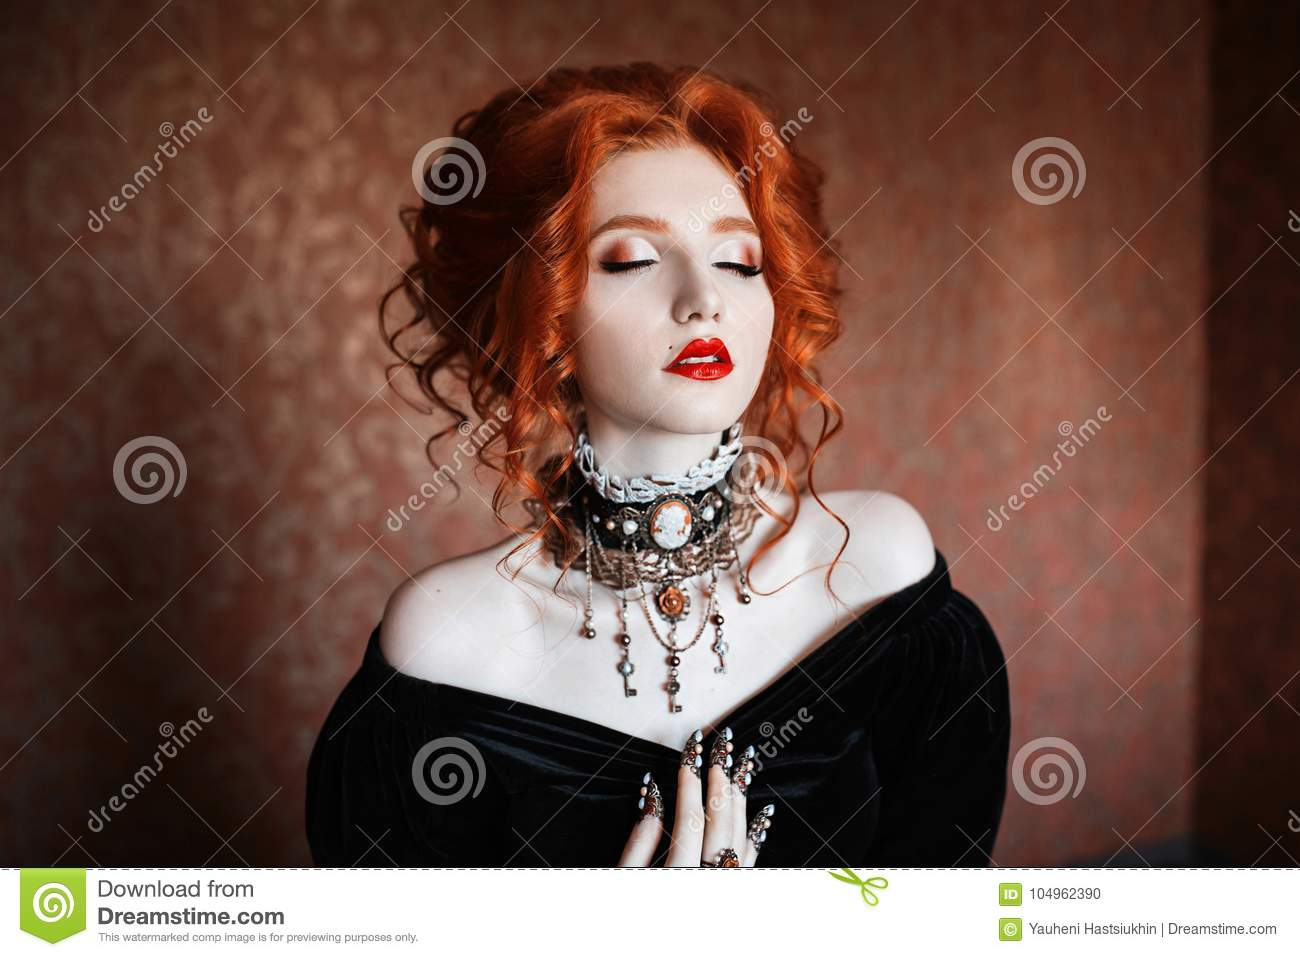 39264f04511 A woman is a vampire with pale skin and red hair in a black dress and a  necklace on her neck.